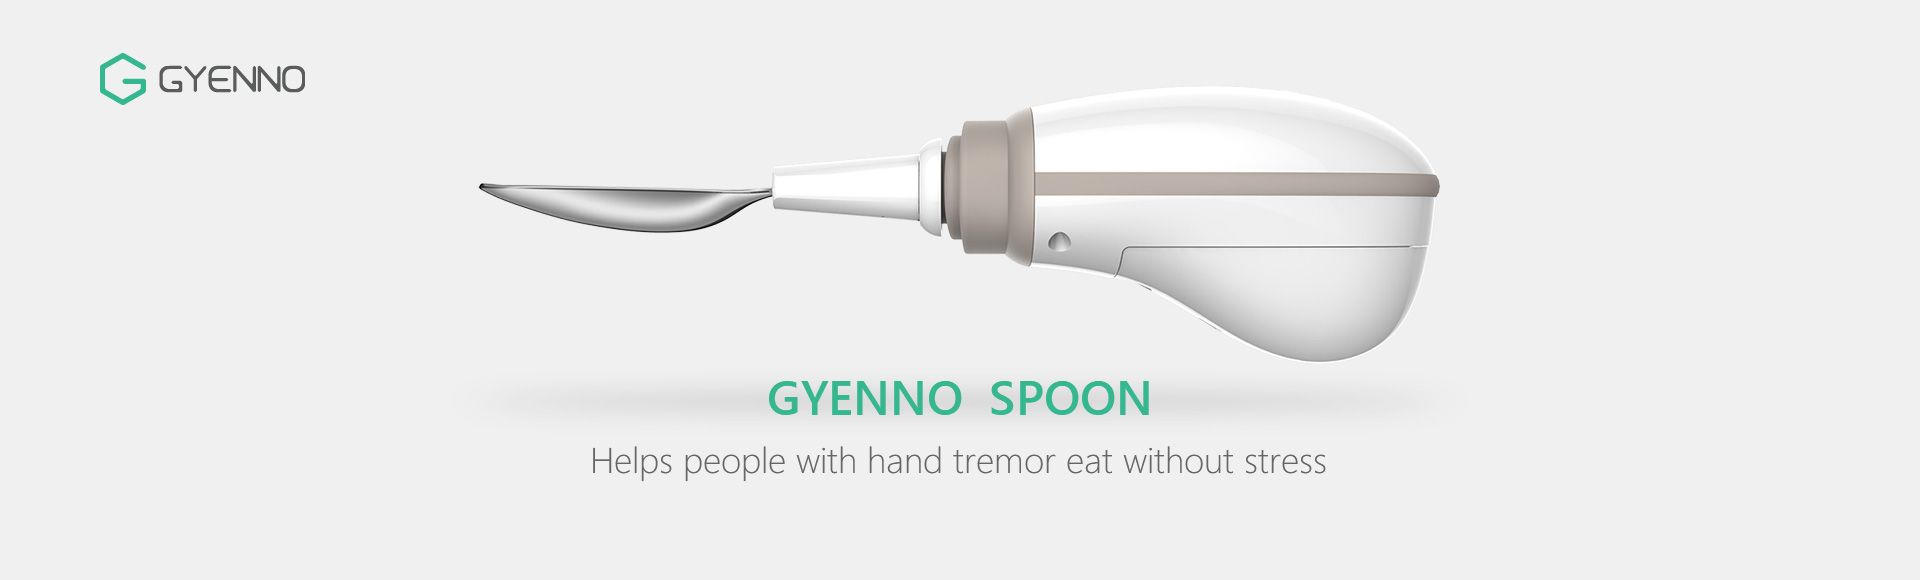 GYENNO Spoon - Comfortable Safe Intelligent Control Anti-tremor To Prevent The Hand Tremor For Old Man Gift